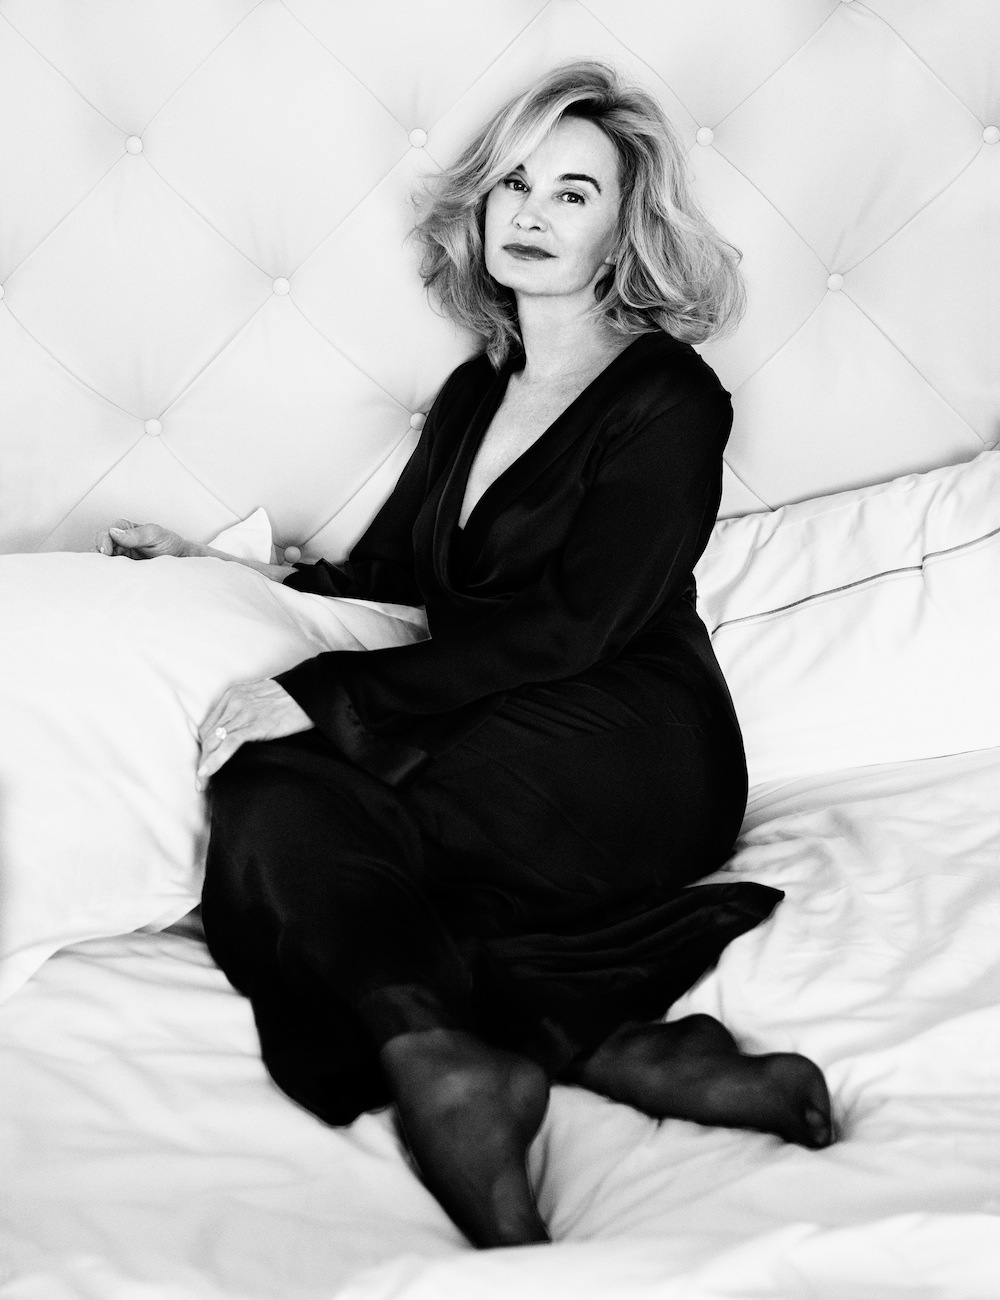 Sympathise with Jessica lange s legs congratulate, your